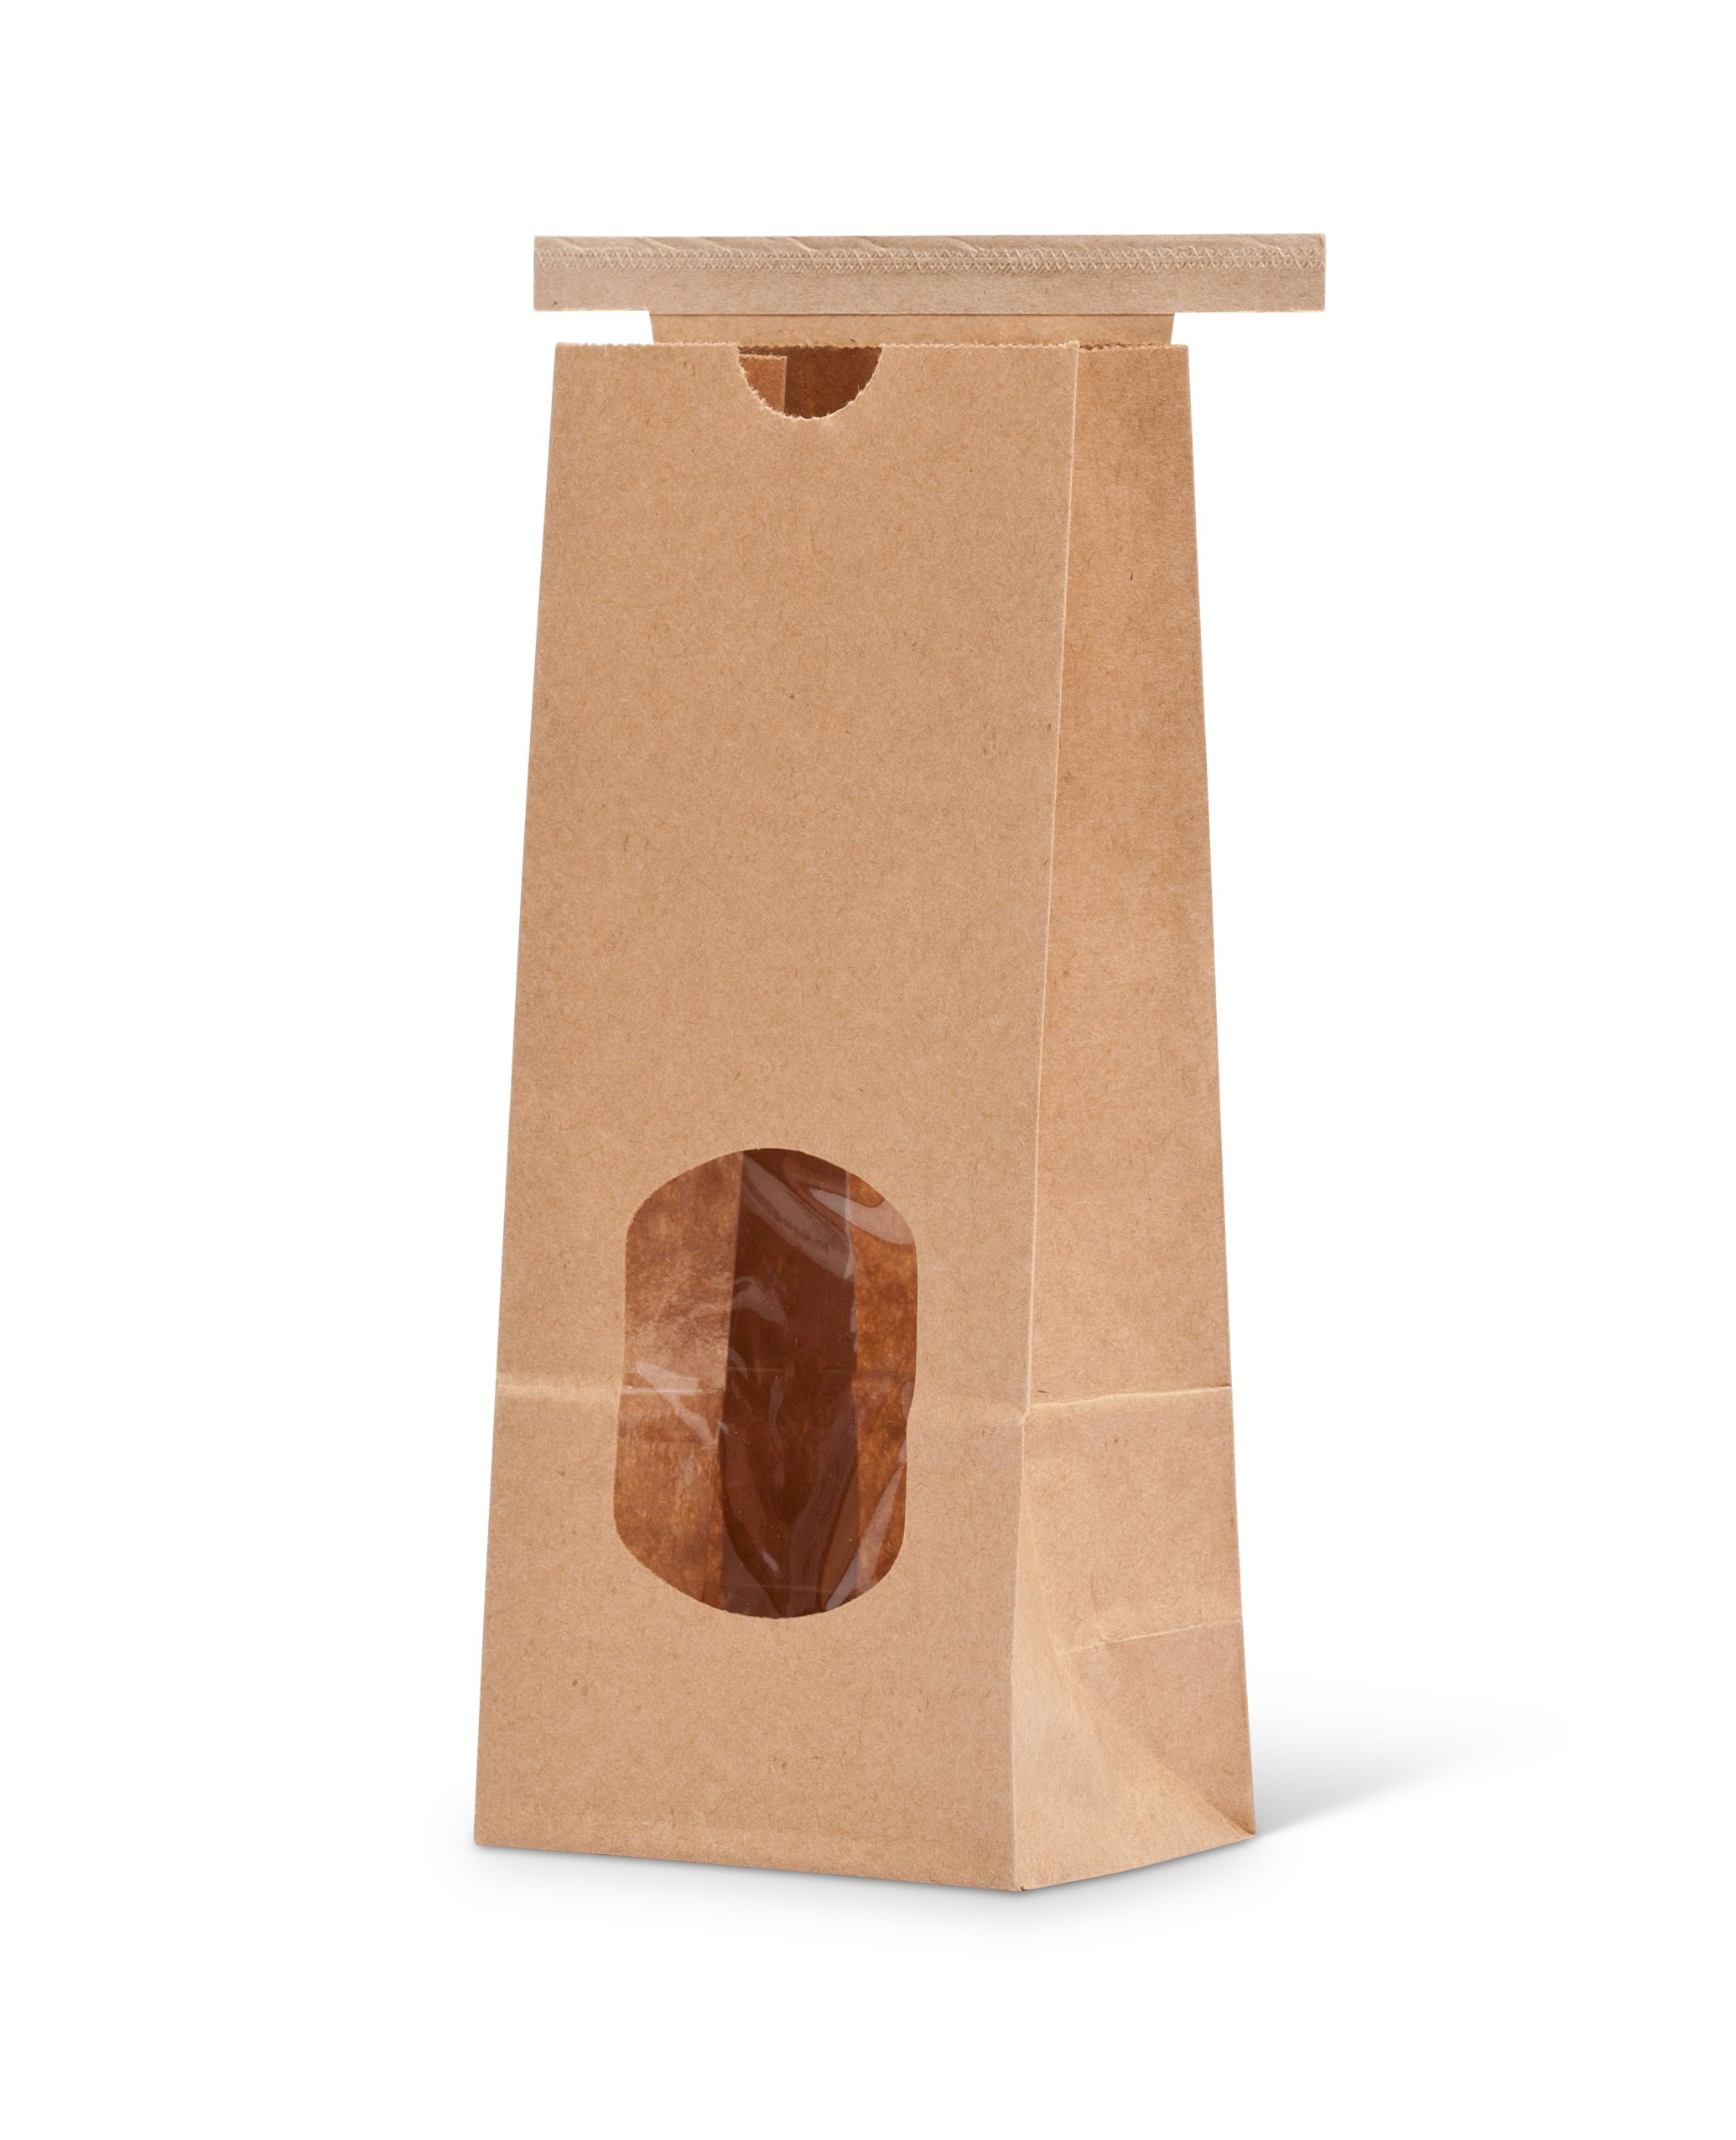 Pacific Bag 150-326W Paper Window Tin-Tie Bag, 41641 lb/ 250 g, Natural Kraft with Polypropylene Liner (Case of 1000)